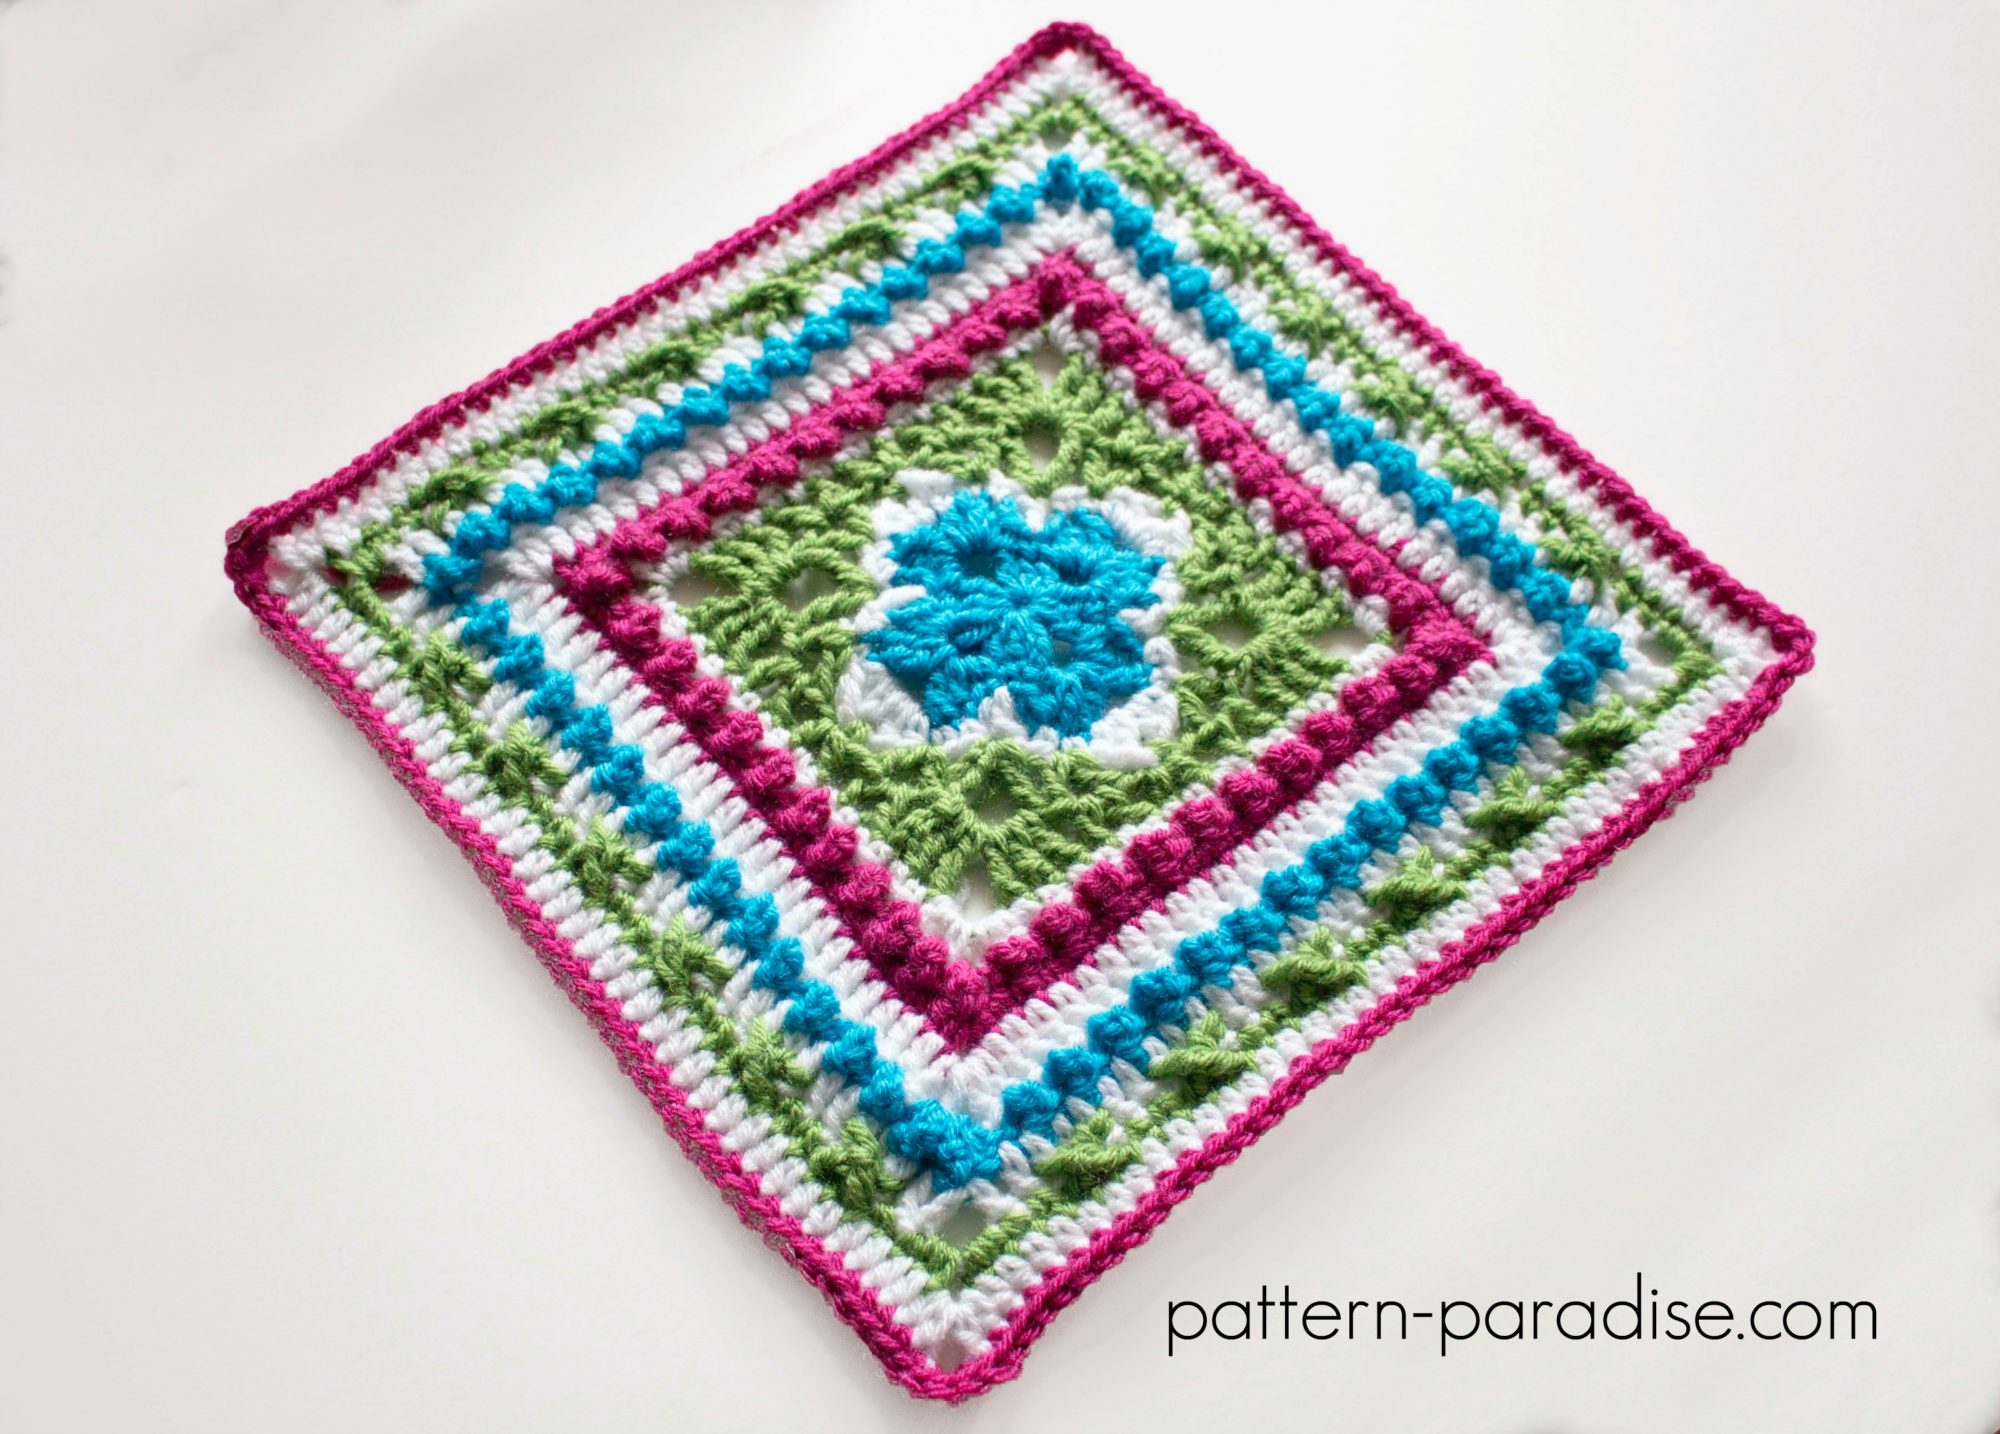 Free Crochet Patterns In English : Free Crochet Pattern: English Garden Afghan Square ...